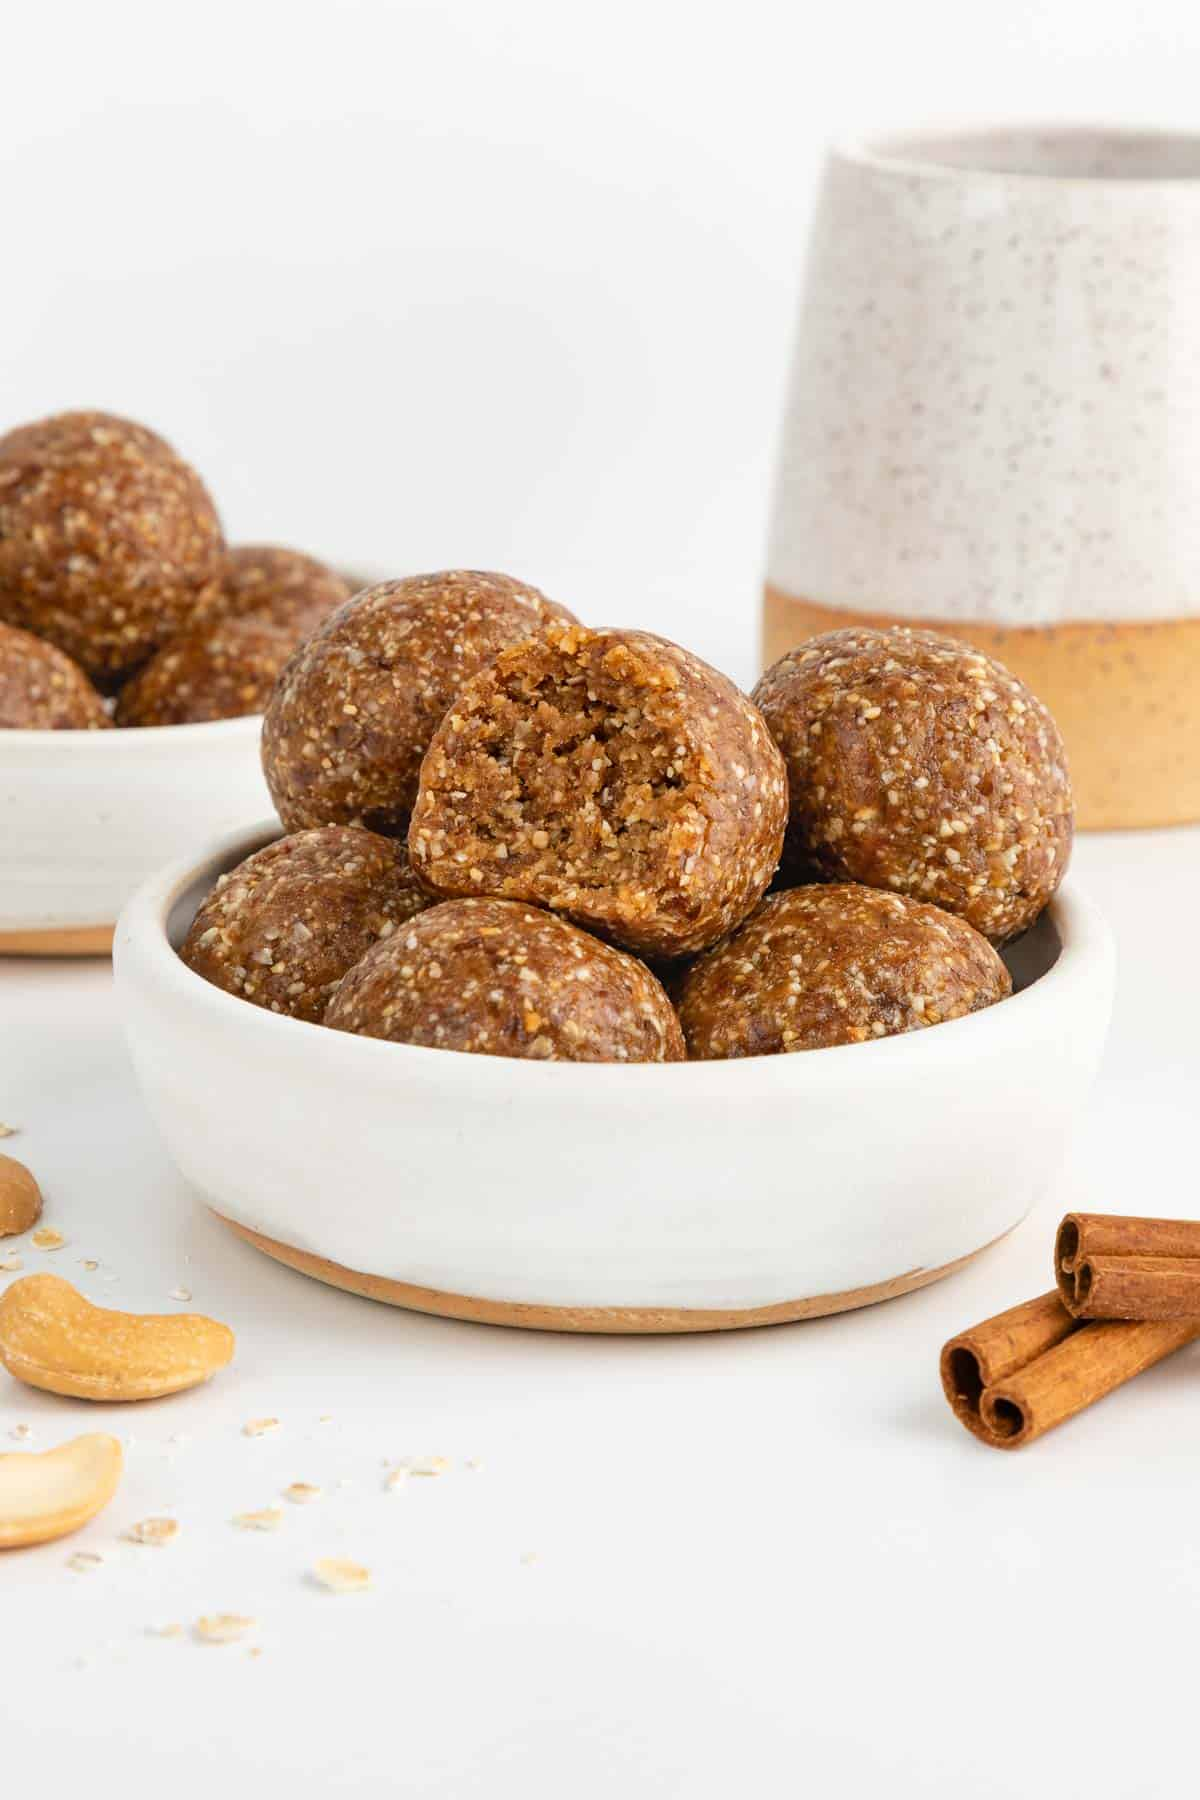 cinnamon roll energy balls stacked inside a small white bowl with a bite taken out of the middle ball